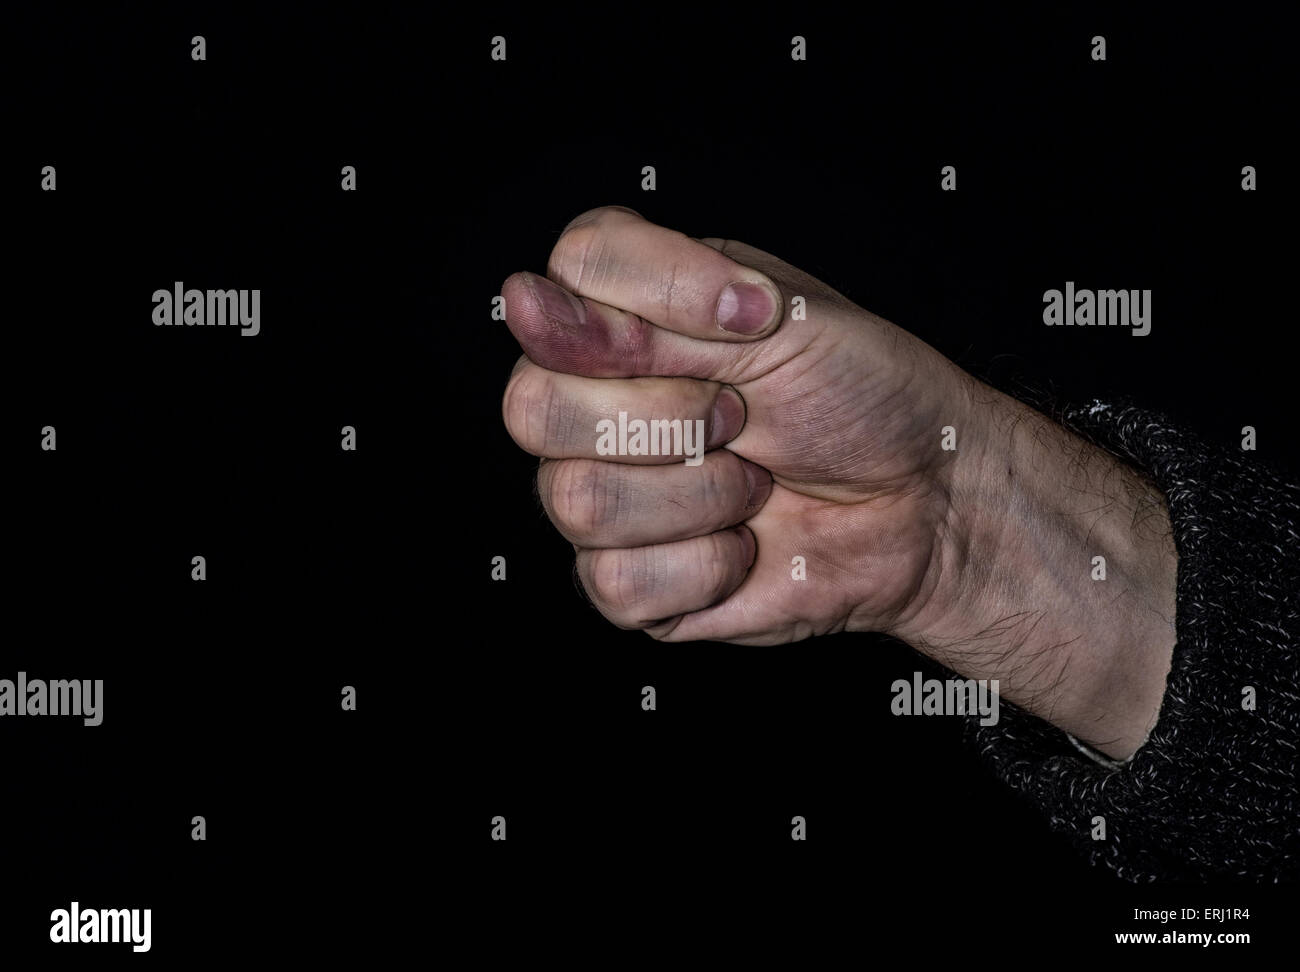 Dulya with dirty hand - rude gesture used in Turkish, Slavic and some other cultures. - Stock Image